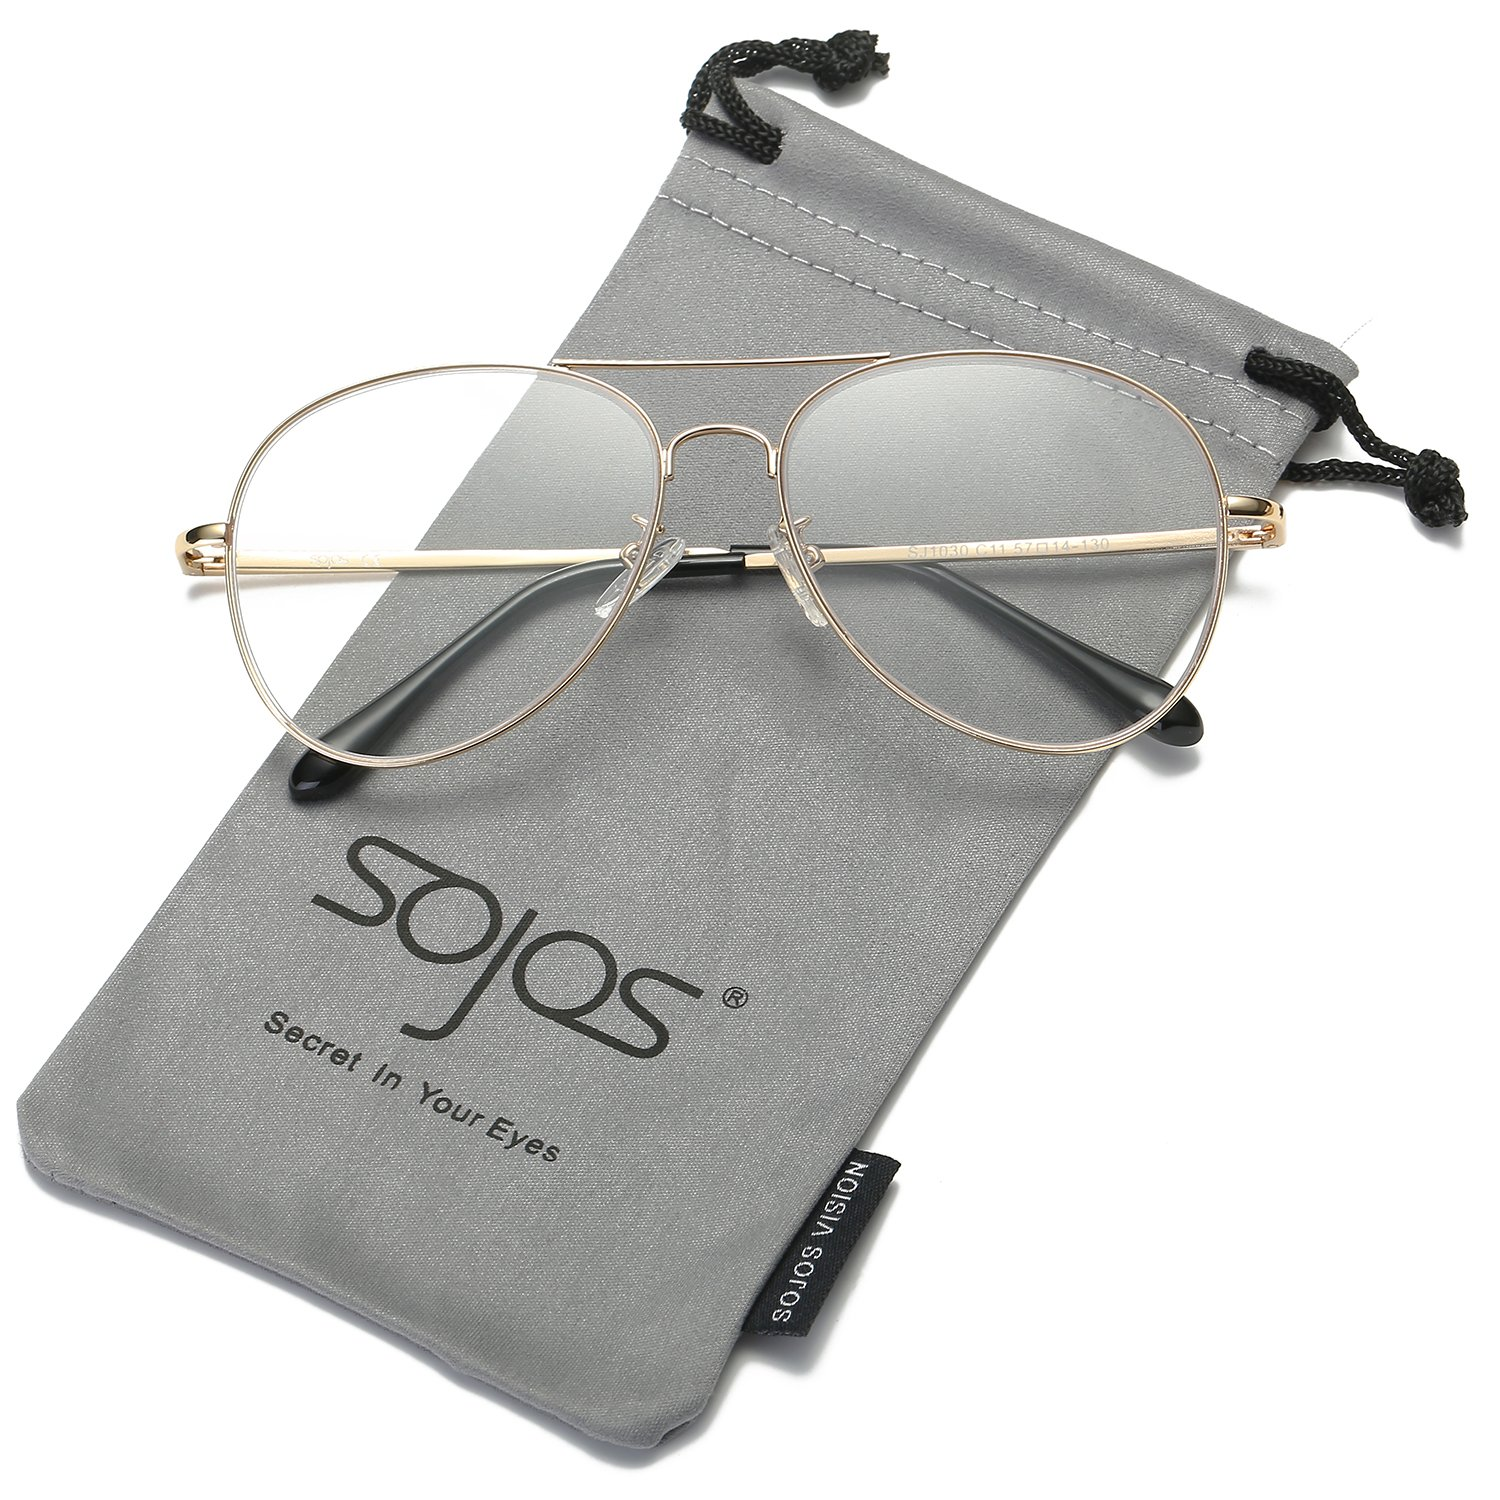 SOJOS Classic Aviator Clear Lens Eyeglasses Eyewear Metal Frame with Spring Hinges SJ1030 with Gold Frame/Clear Lens